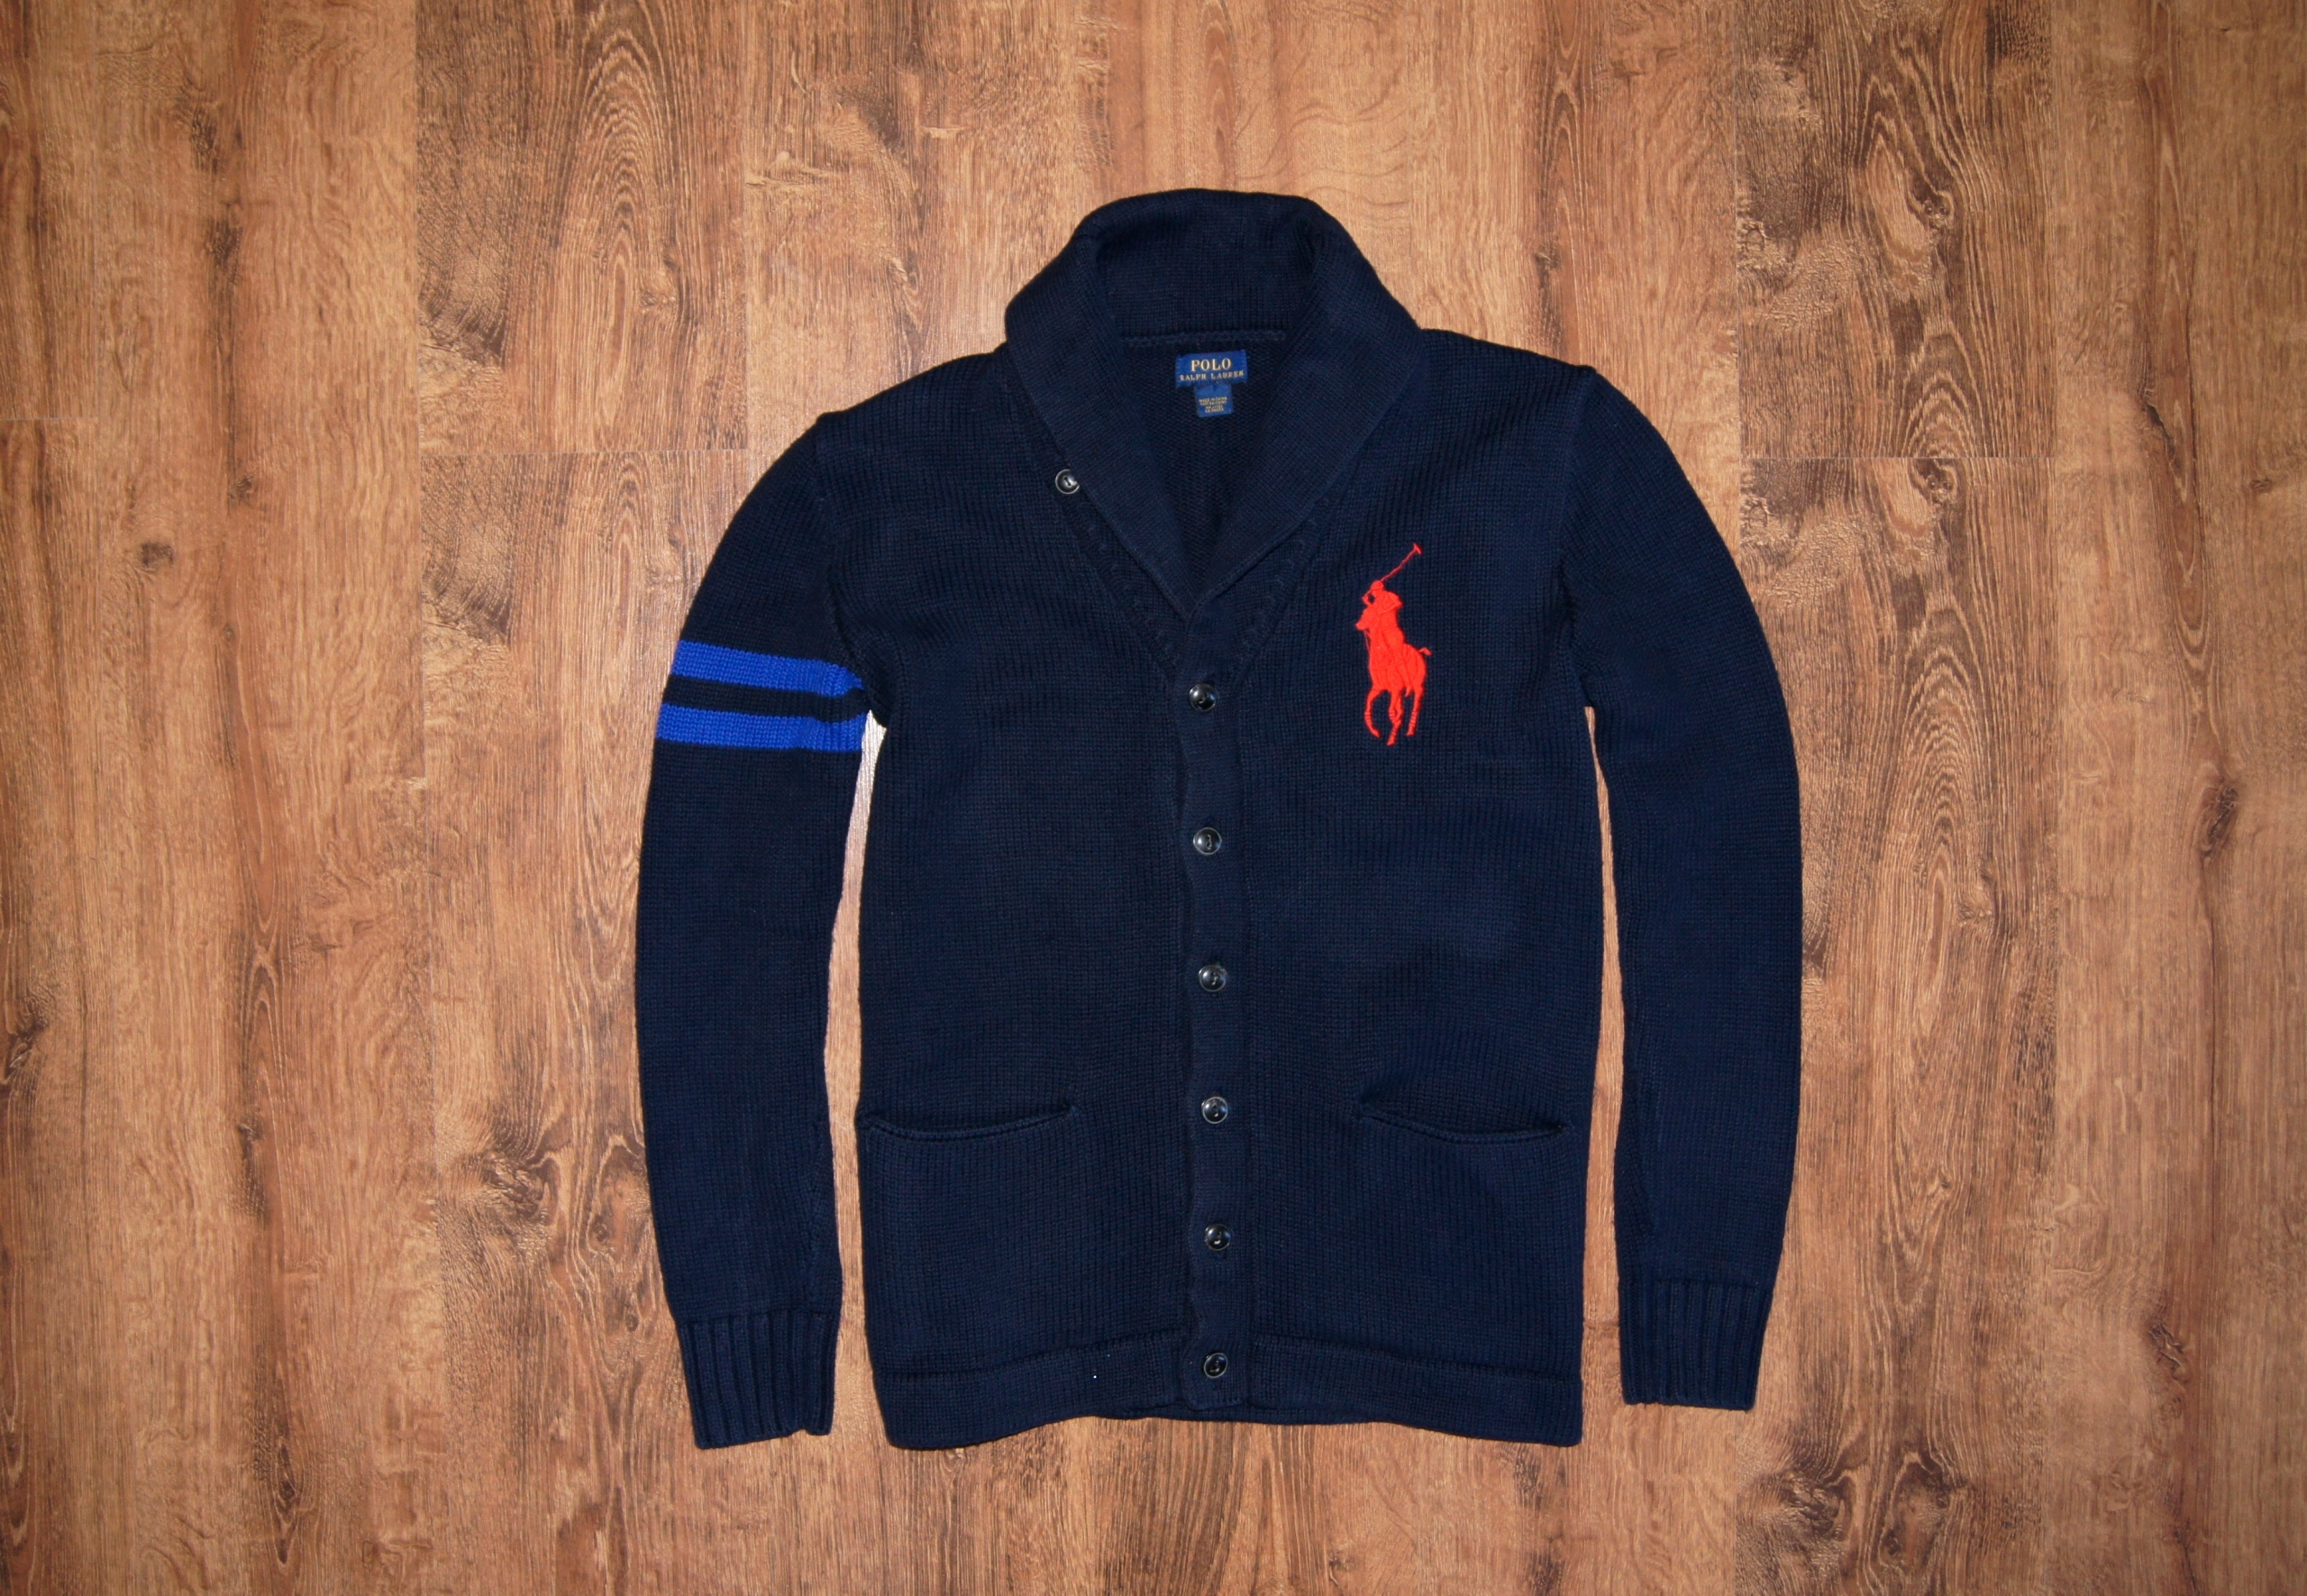 POLO by RALPH LAUREN ORYGINAL CARDIGAN NEW MODEL M